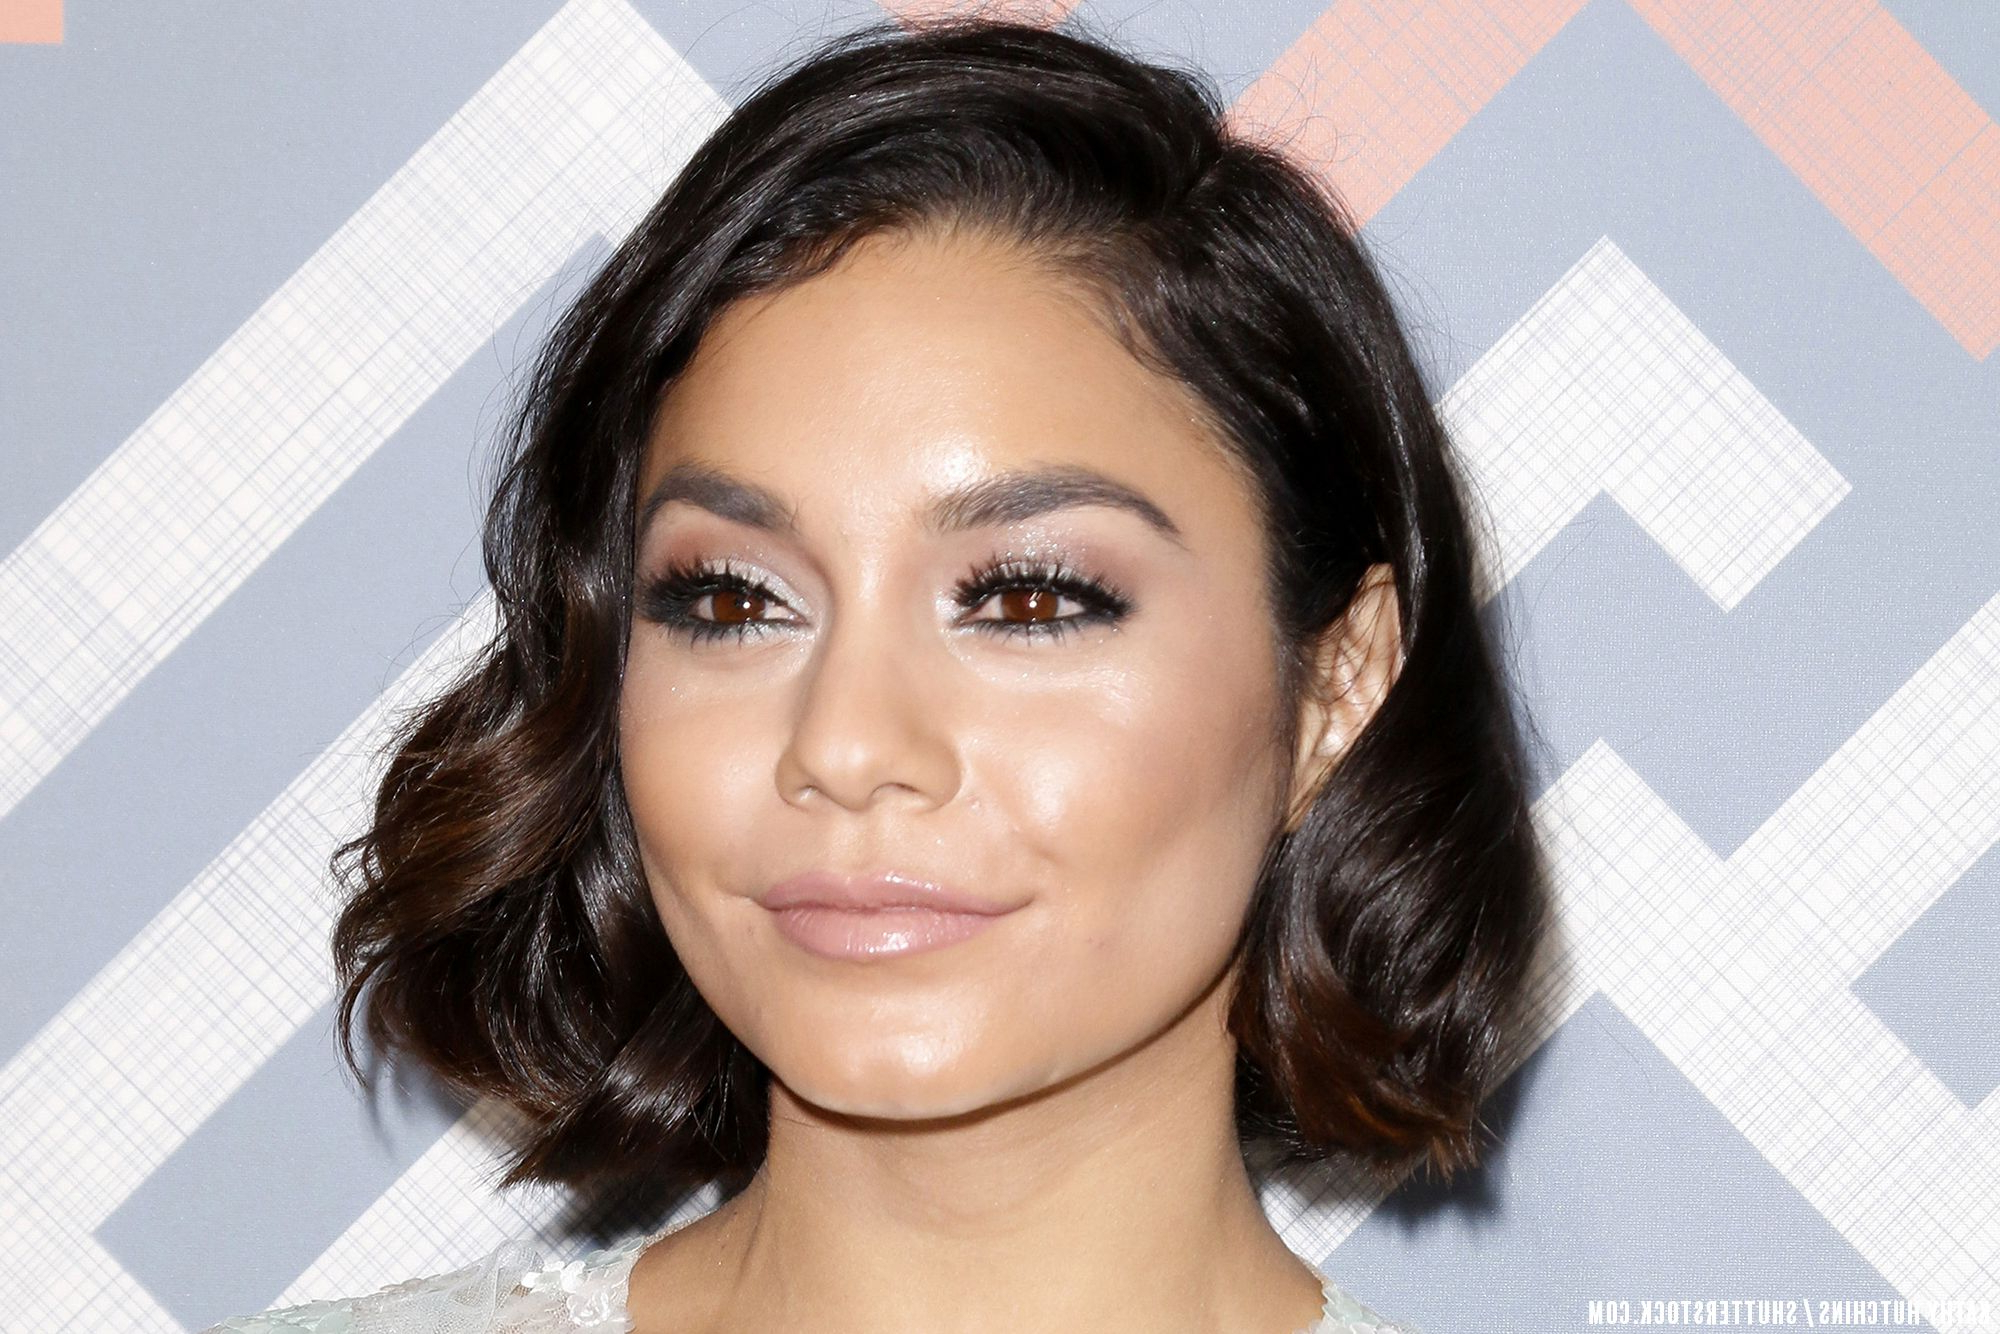 Proof Vanessa Hudgens' Short Hair Is Nothing But Glam | Celebrity Intended For Vanessa Hudgens Short Hairstyles (View 3 of 25)